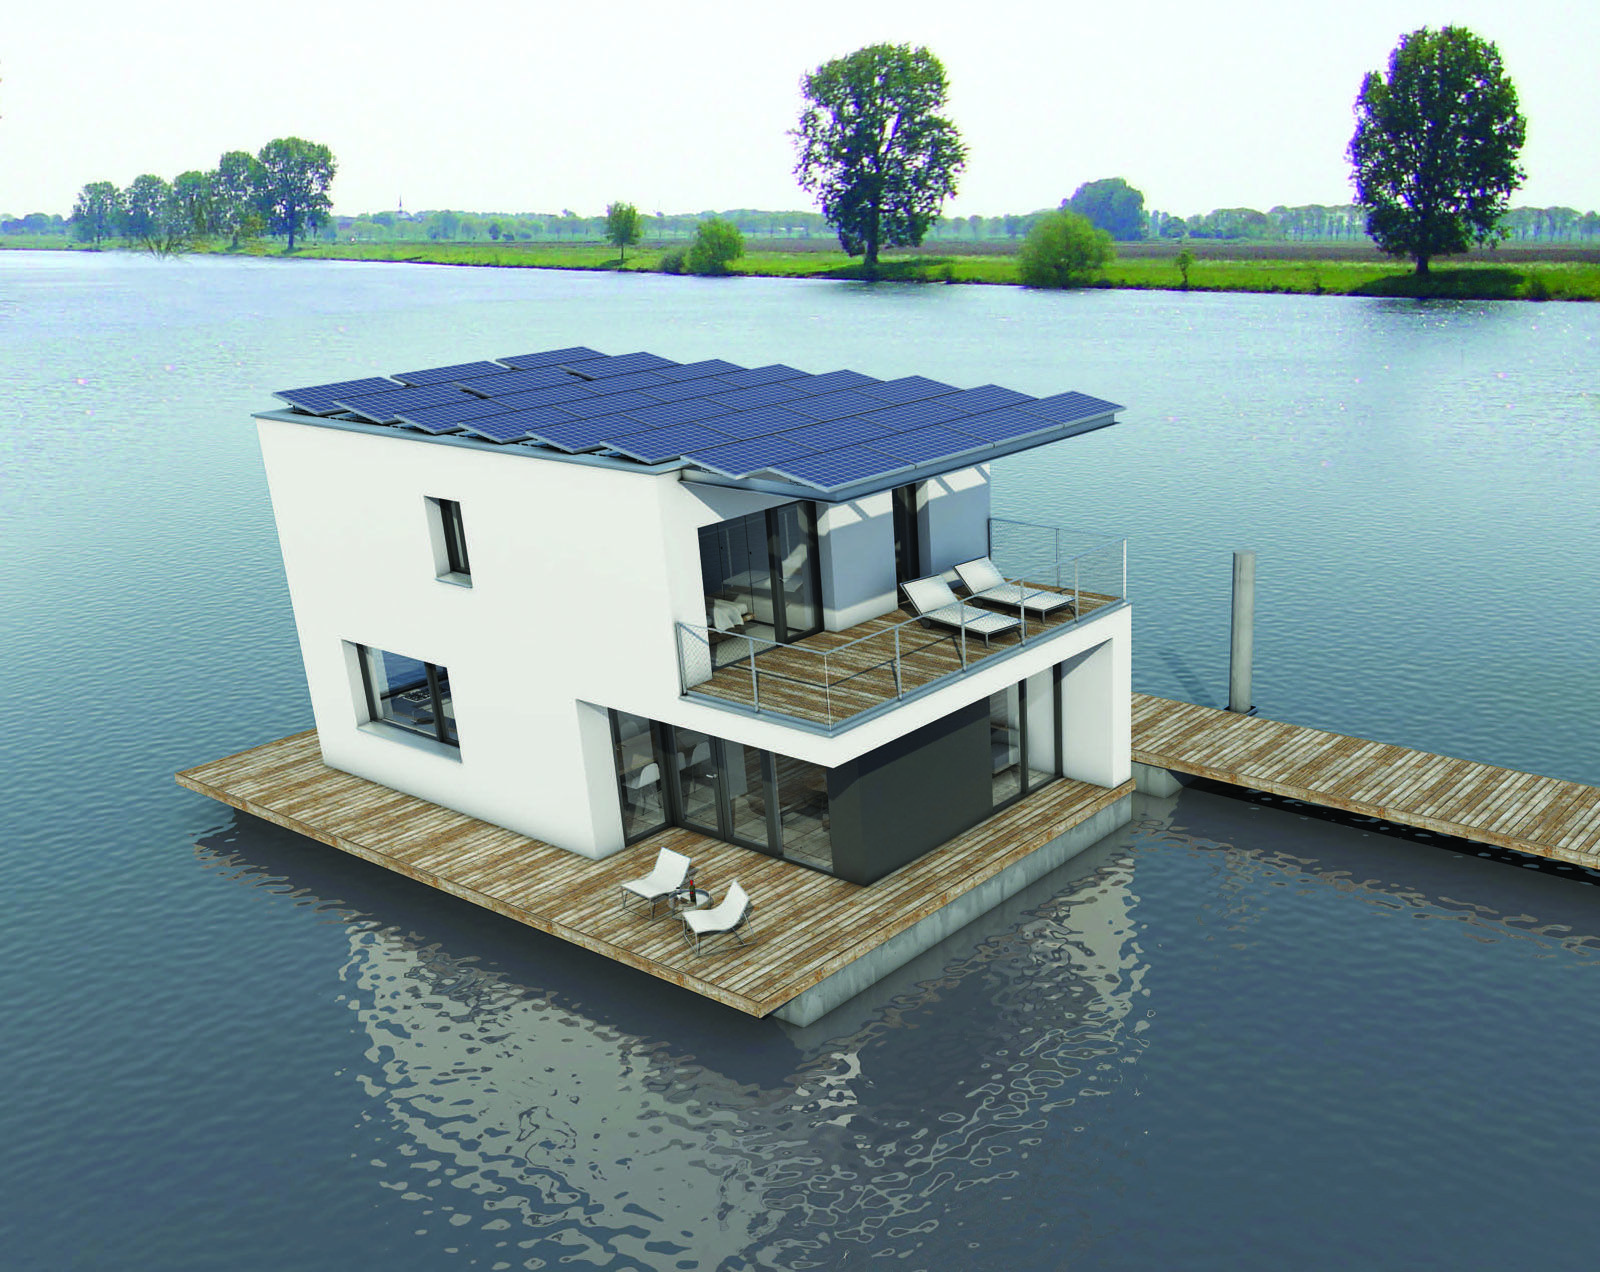 Floating Home Manufacturers Autarkhome Is The First Energy Neutral And Self Sufficiant Home In